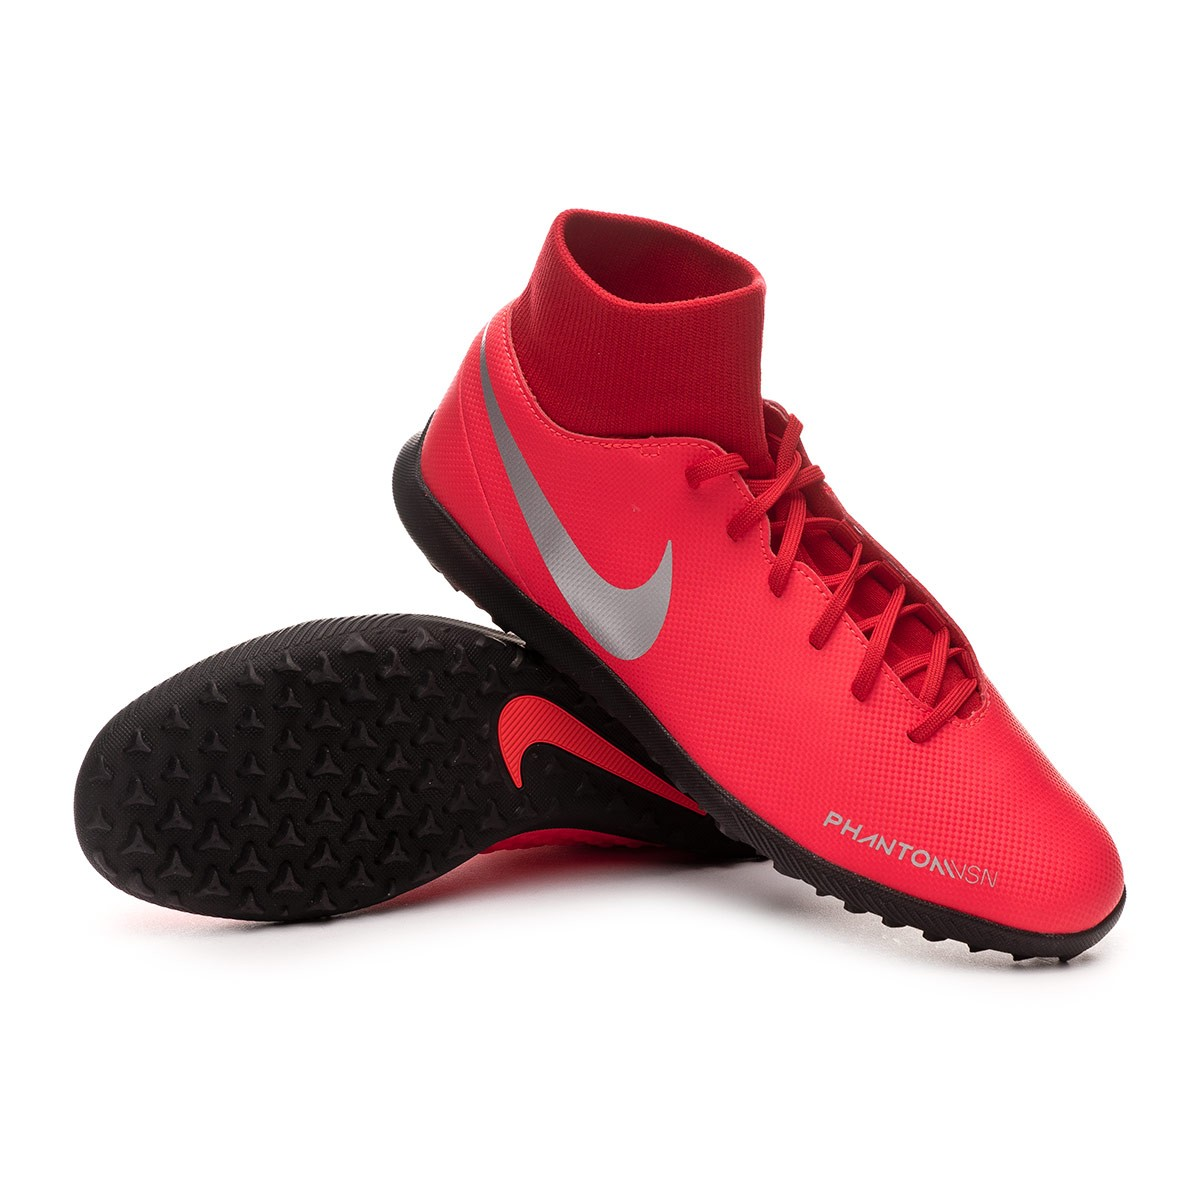 lobo Favor mostrador  Football Boot Nike Phantom Vision Club DF Turf Bright crimson-Metallic  silver - Football store Fútbol Emotion